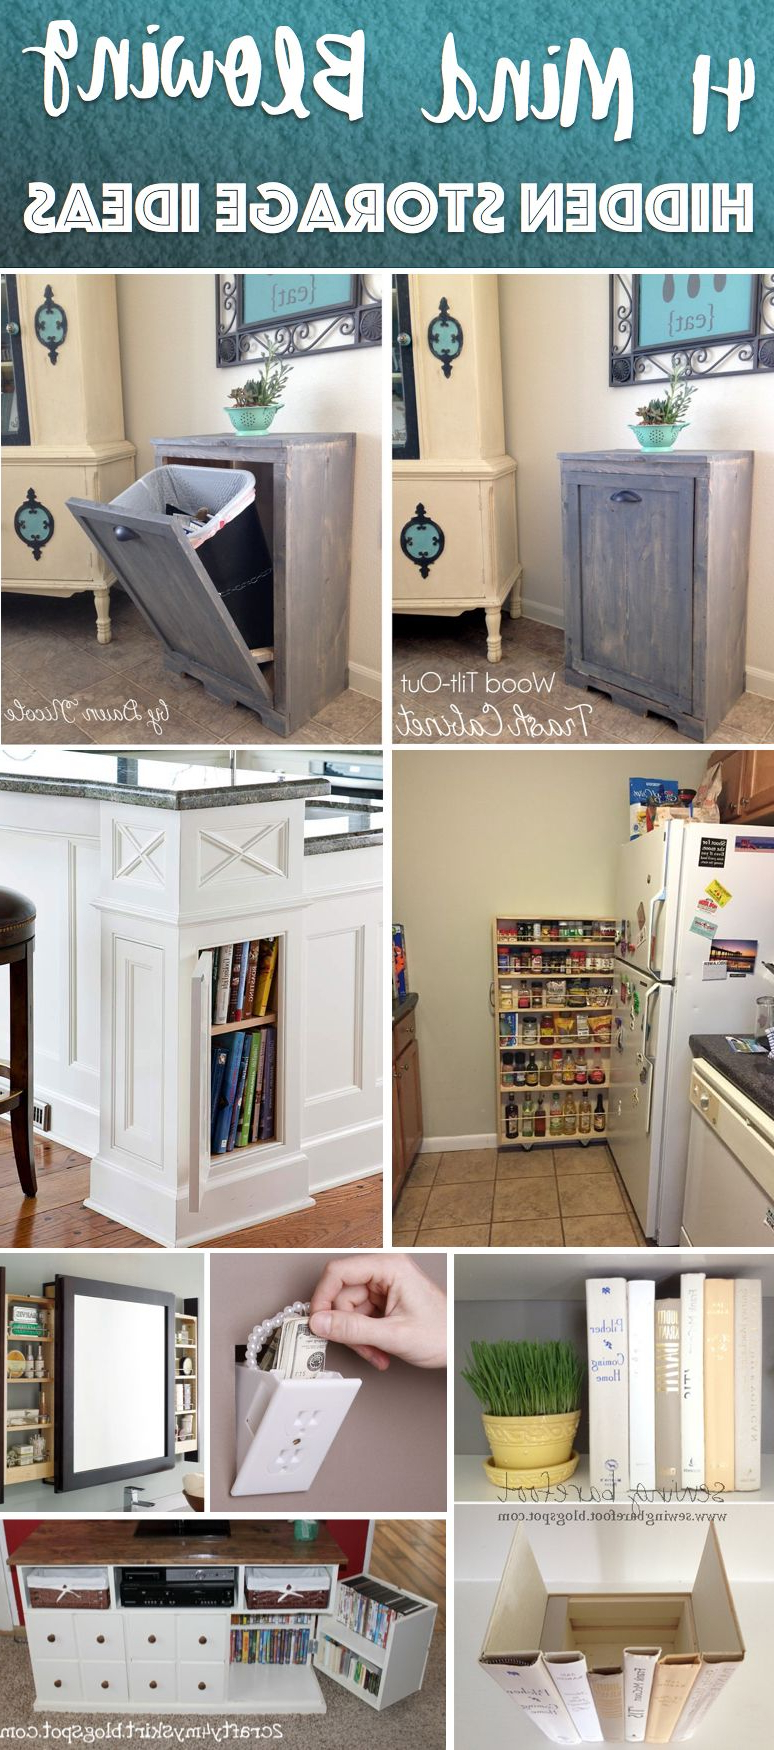 41 Mind Blowing Hidden Storage Ideas Making A Clever Use